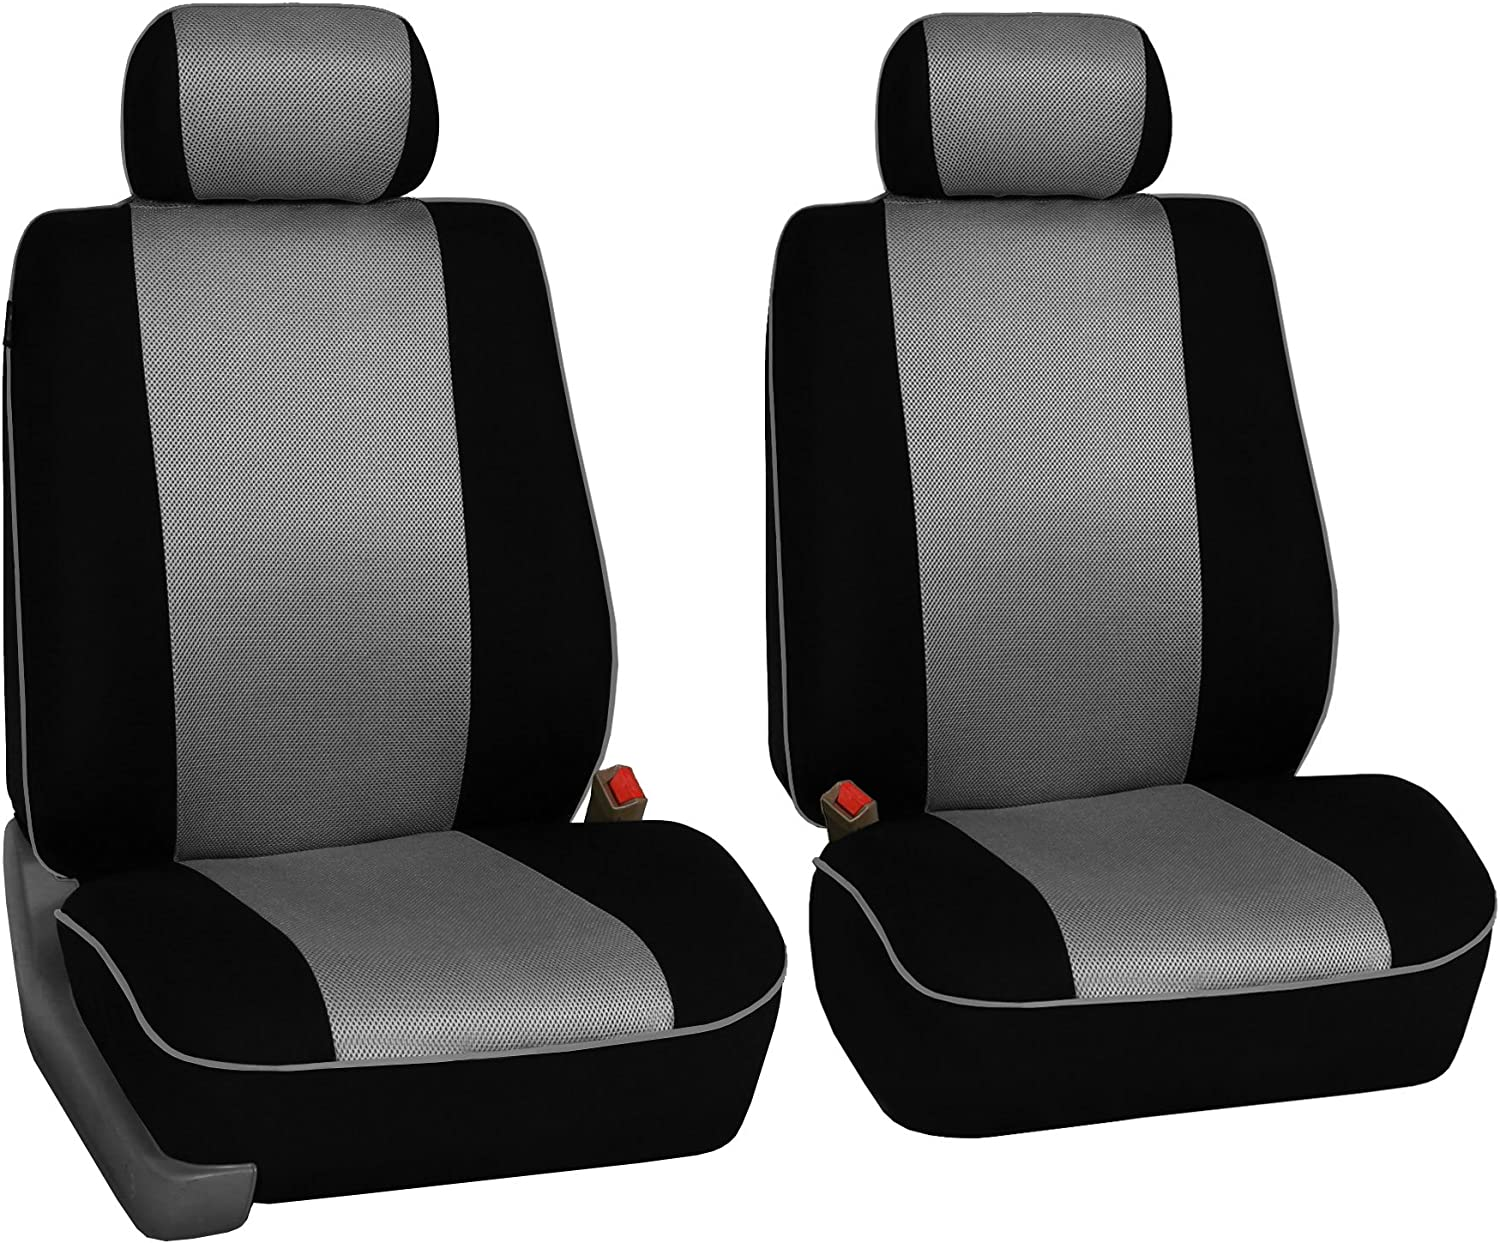 Truck FH Group FH-FB063128 Three Row Cloth Car Seat Covers with Piping Airbag /& Split Ready Beige//Black- Fit Most Car SUV or Van